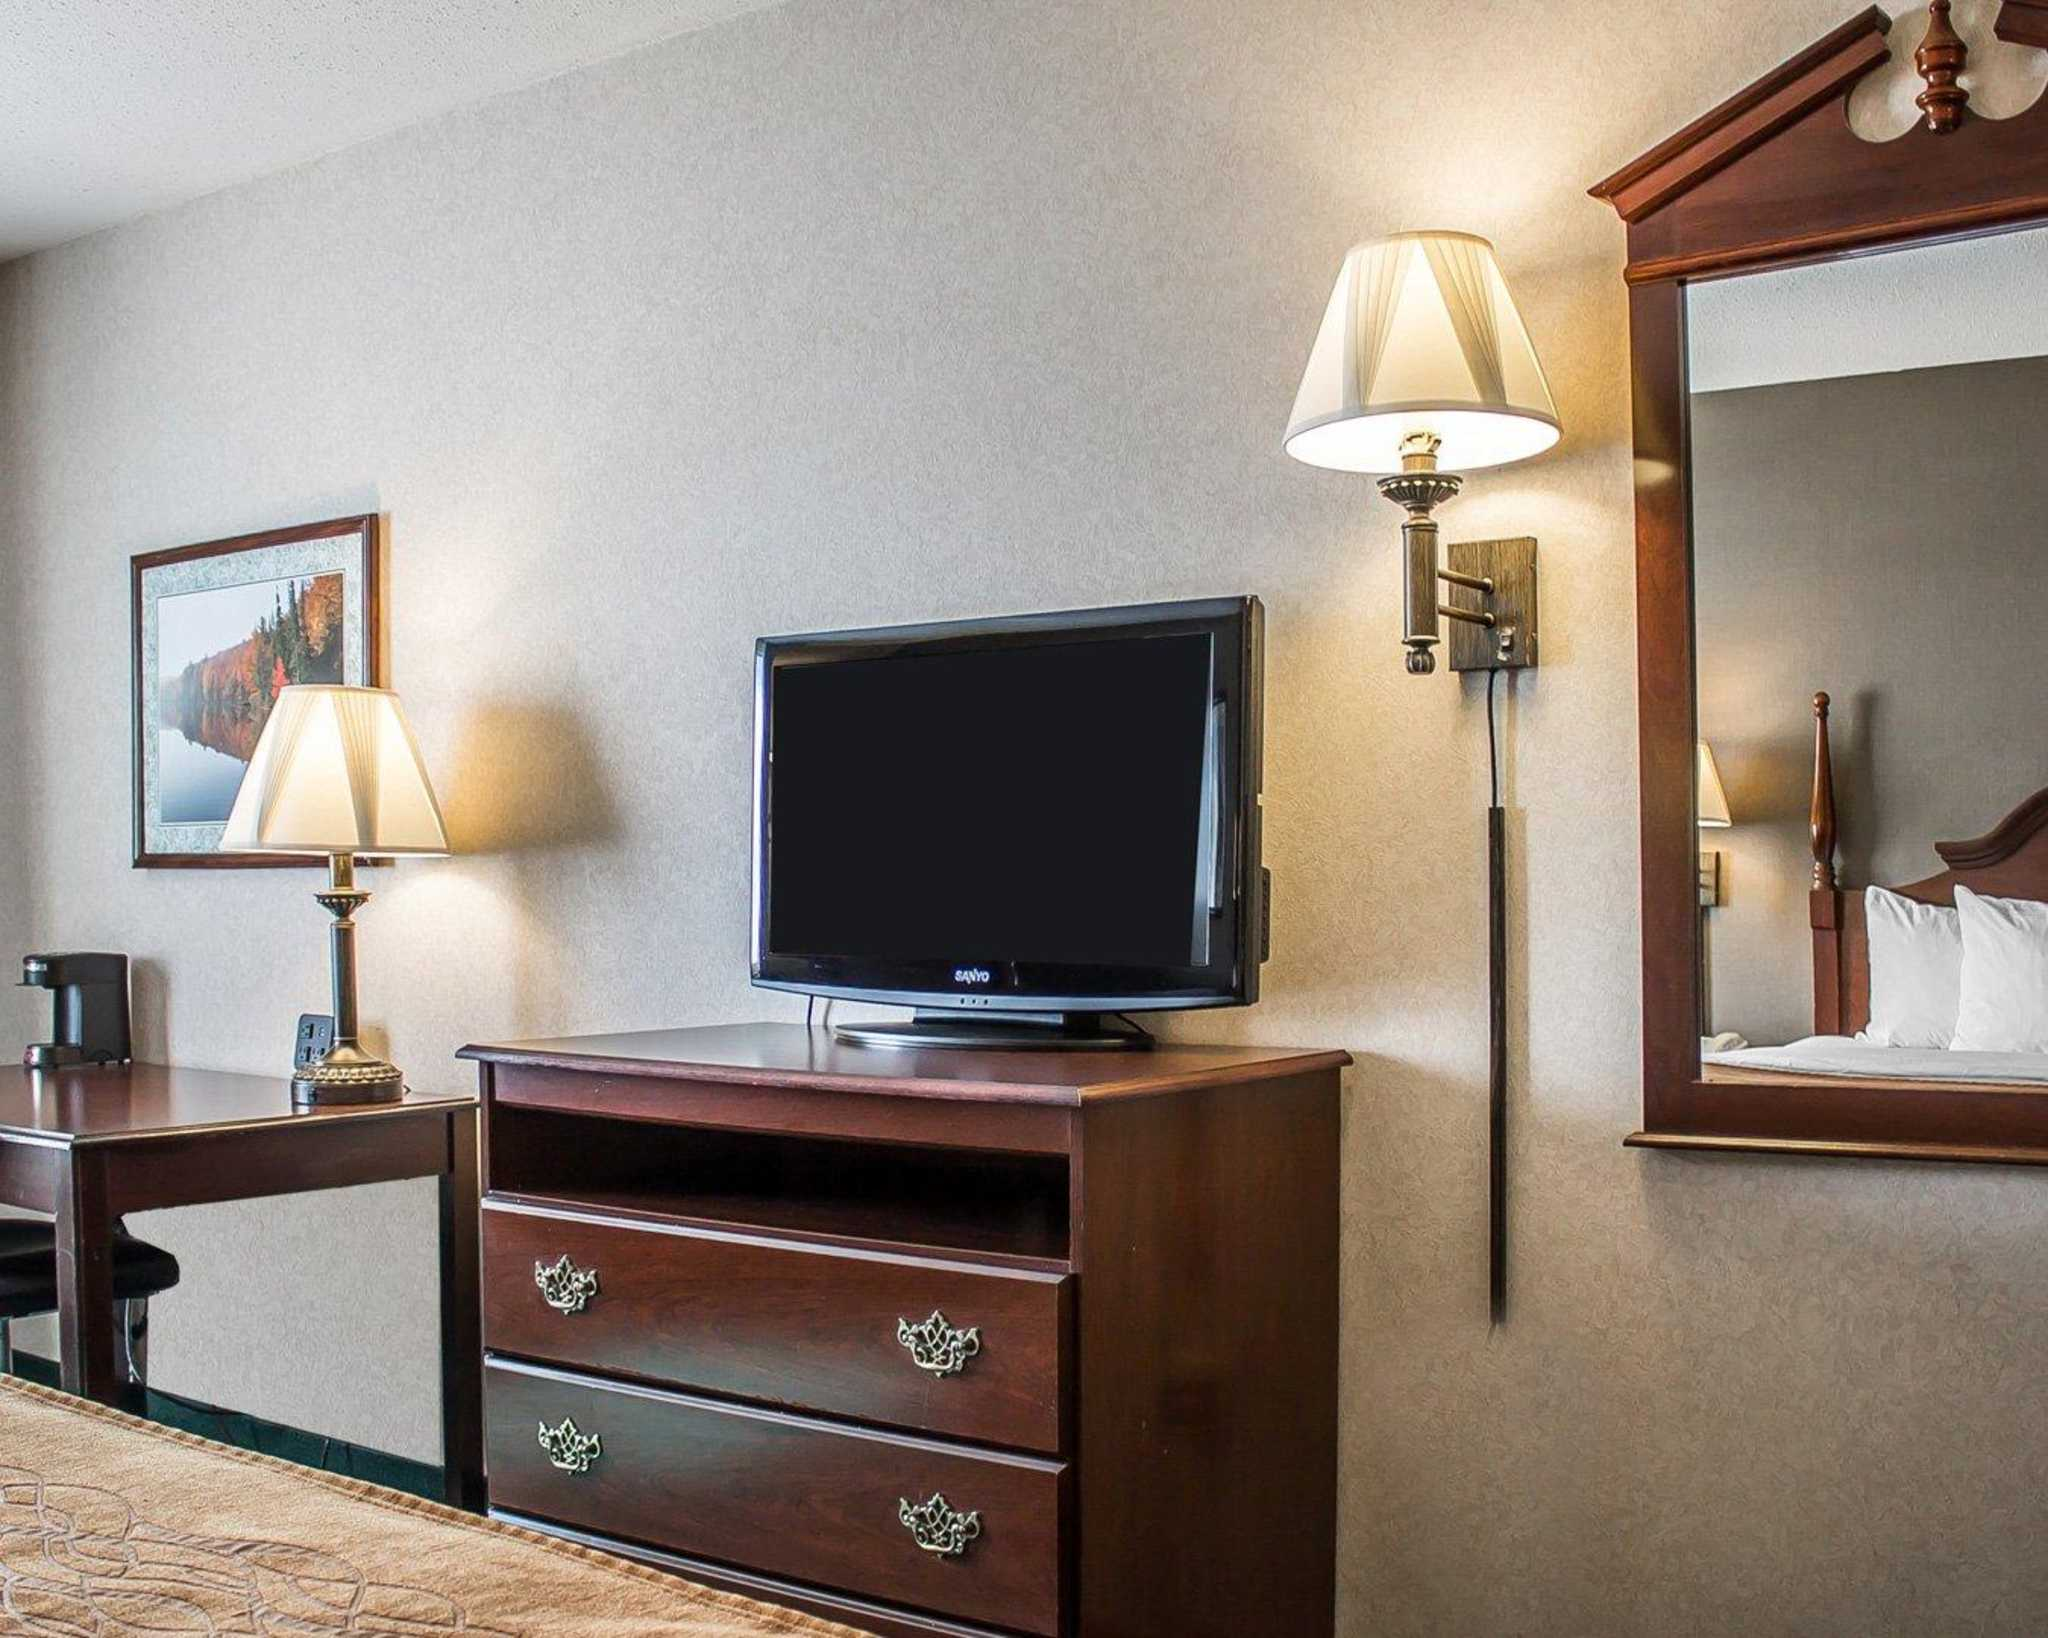 Quality Inn & Suites image 12